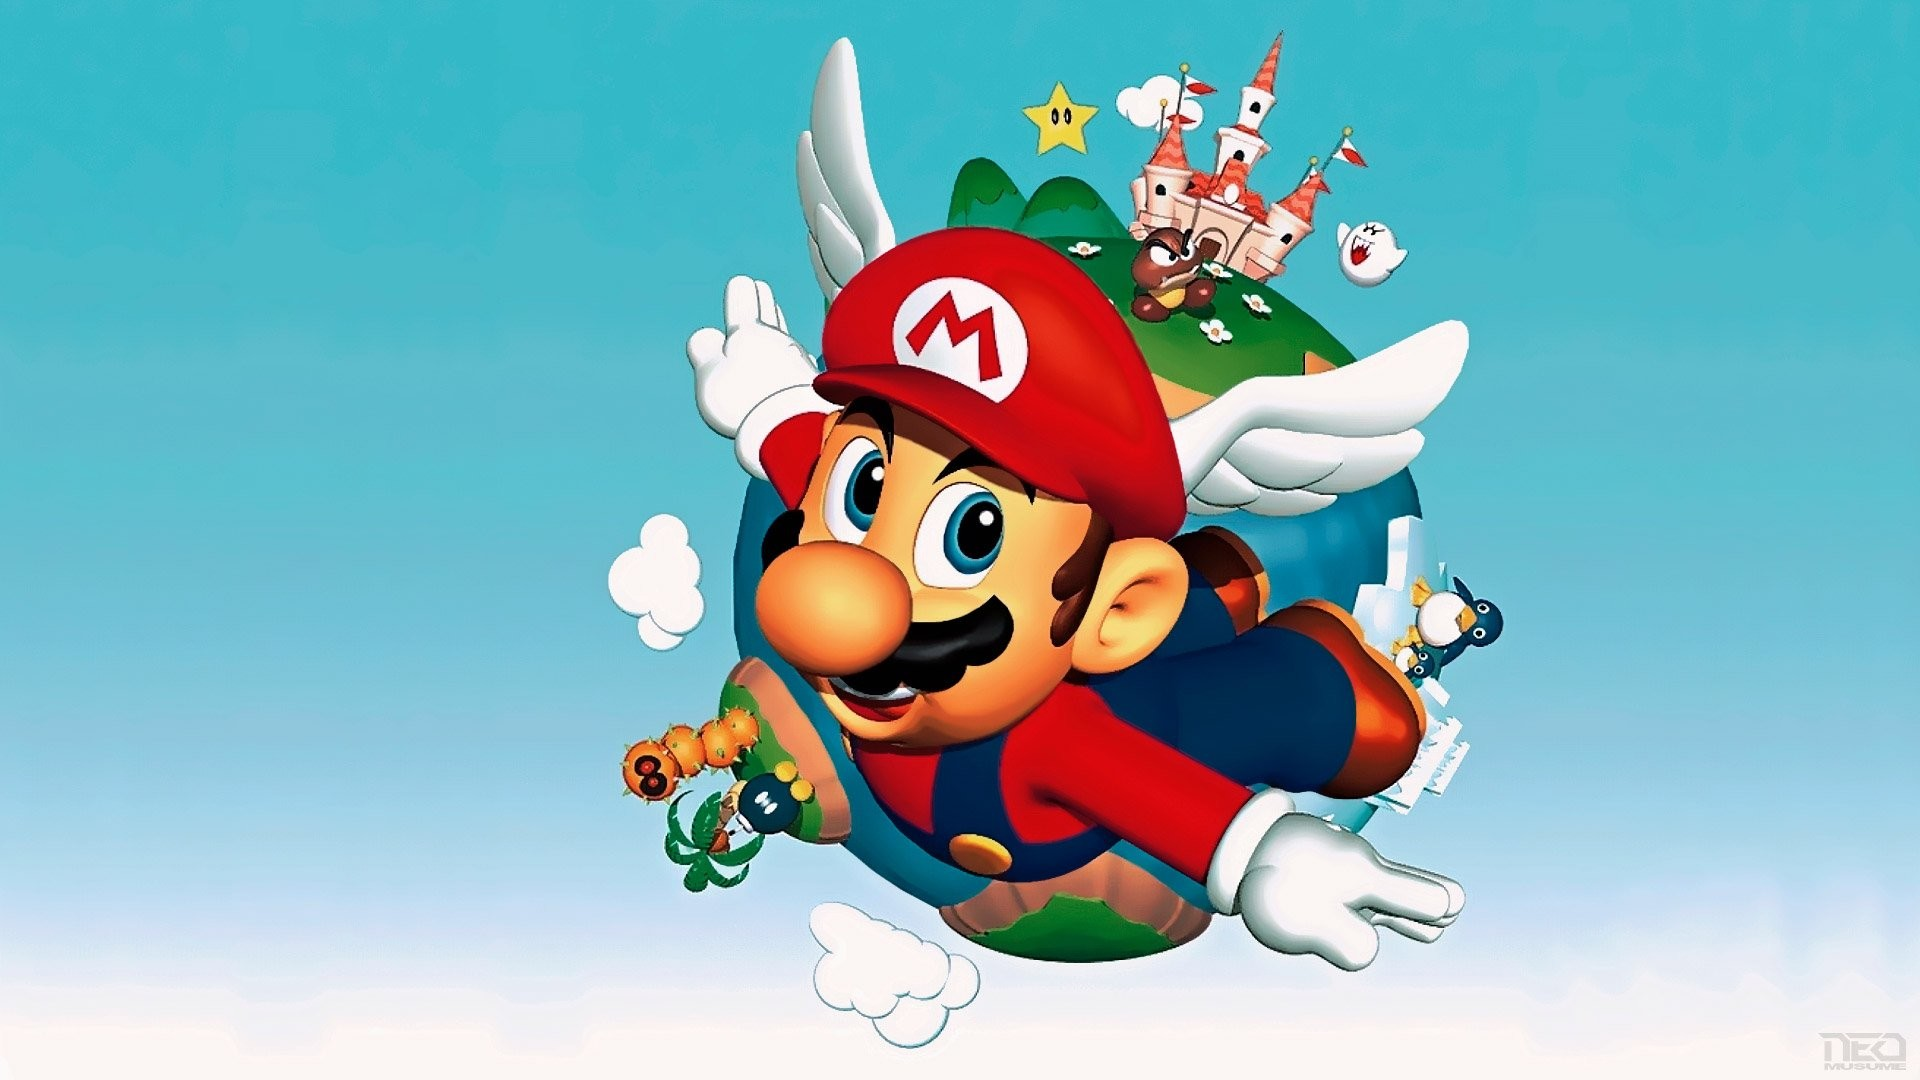 Super Mario 64 Wallpapers Wallpapers All Superior Super Mario 64 Wallpapers Backgrounds Wallpapersplanet Net